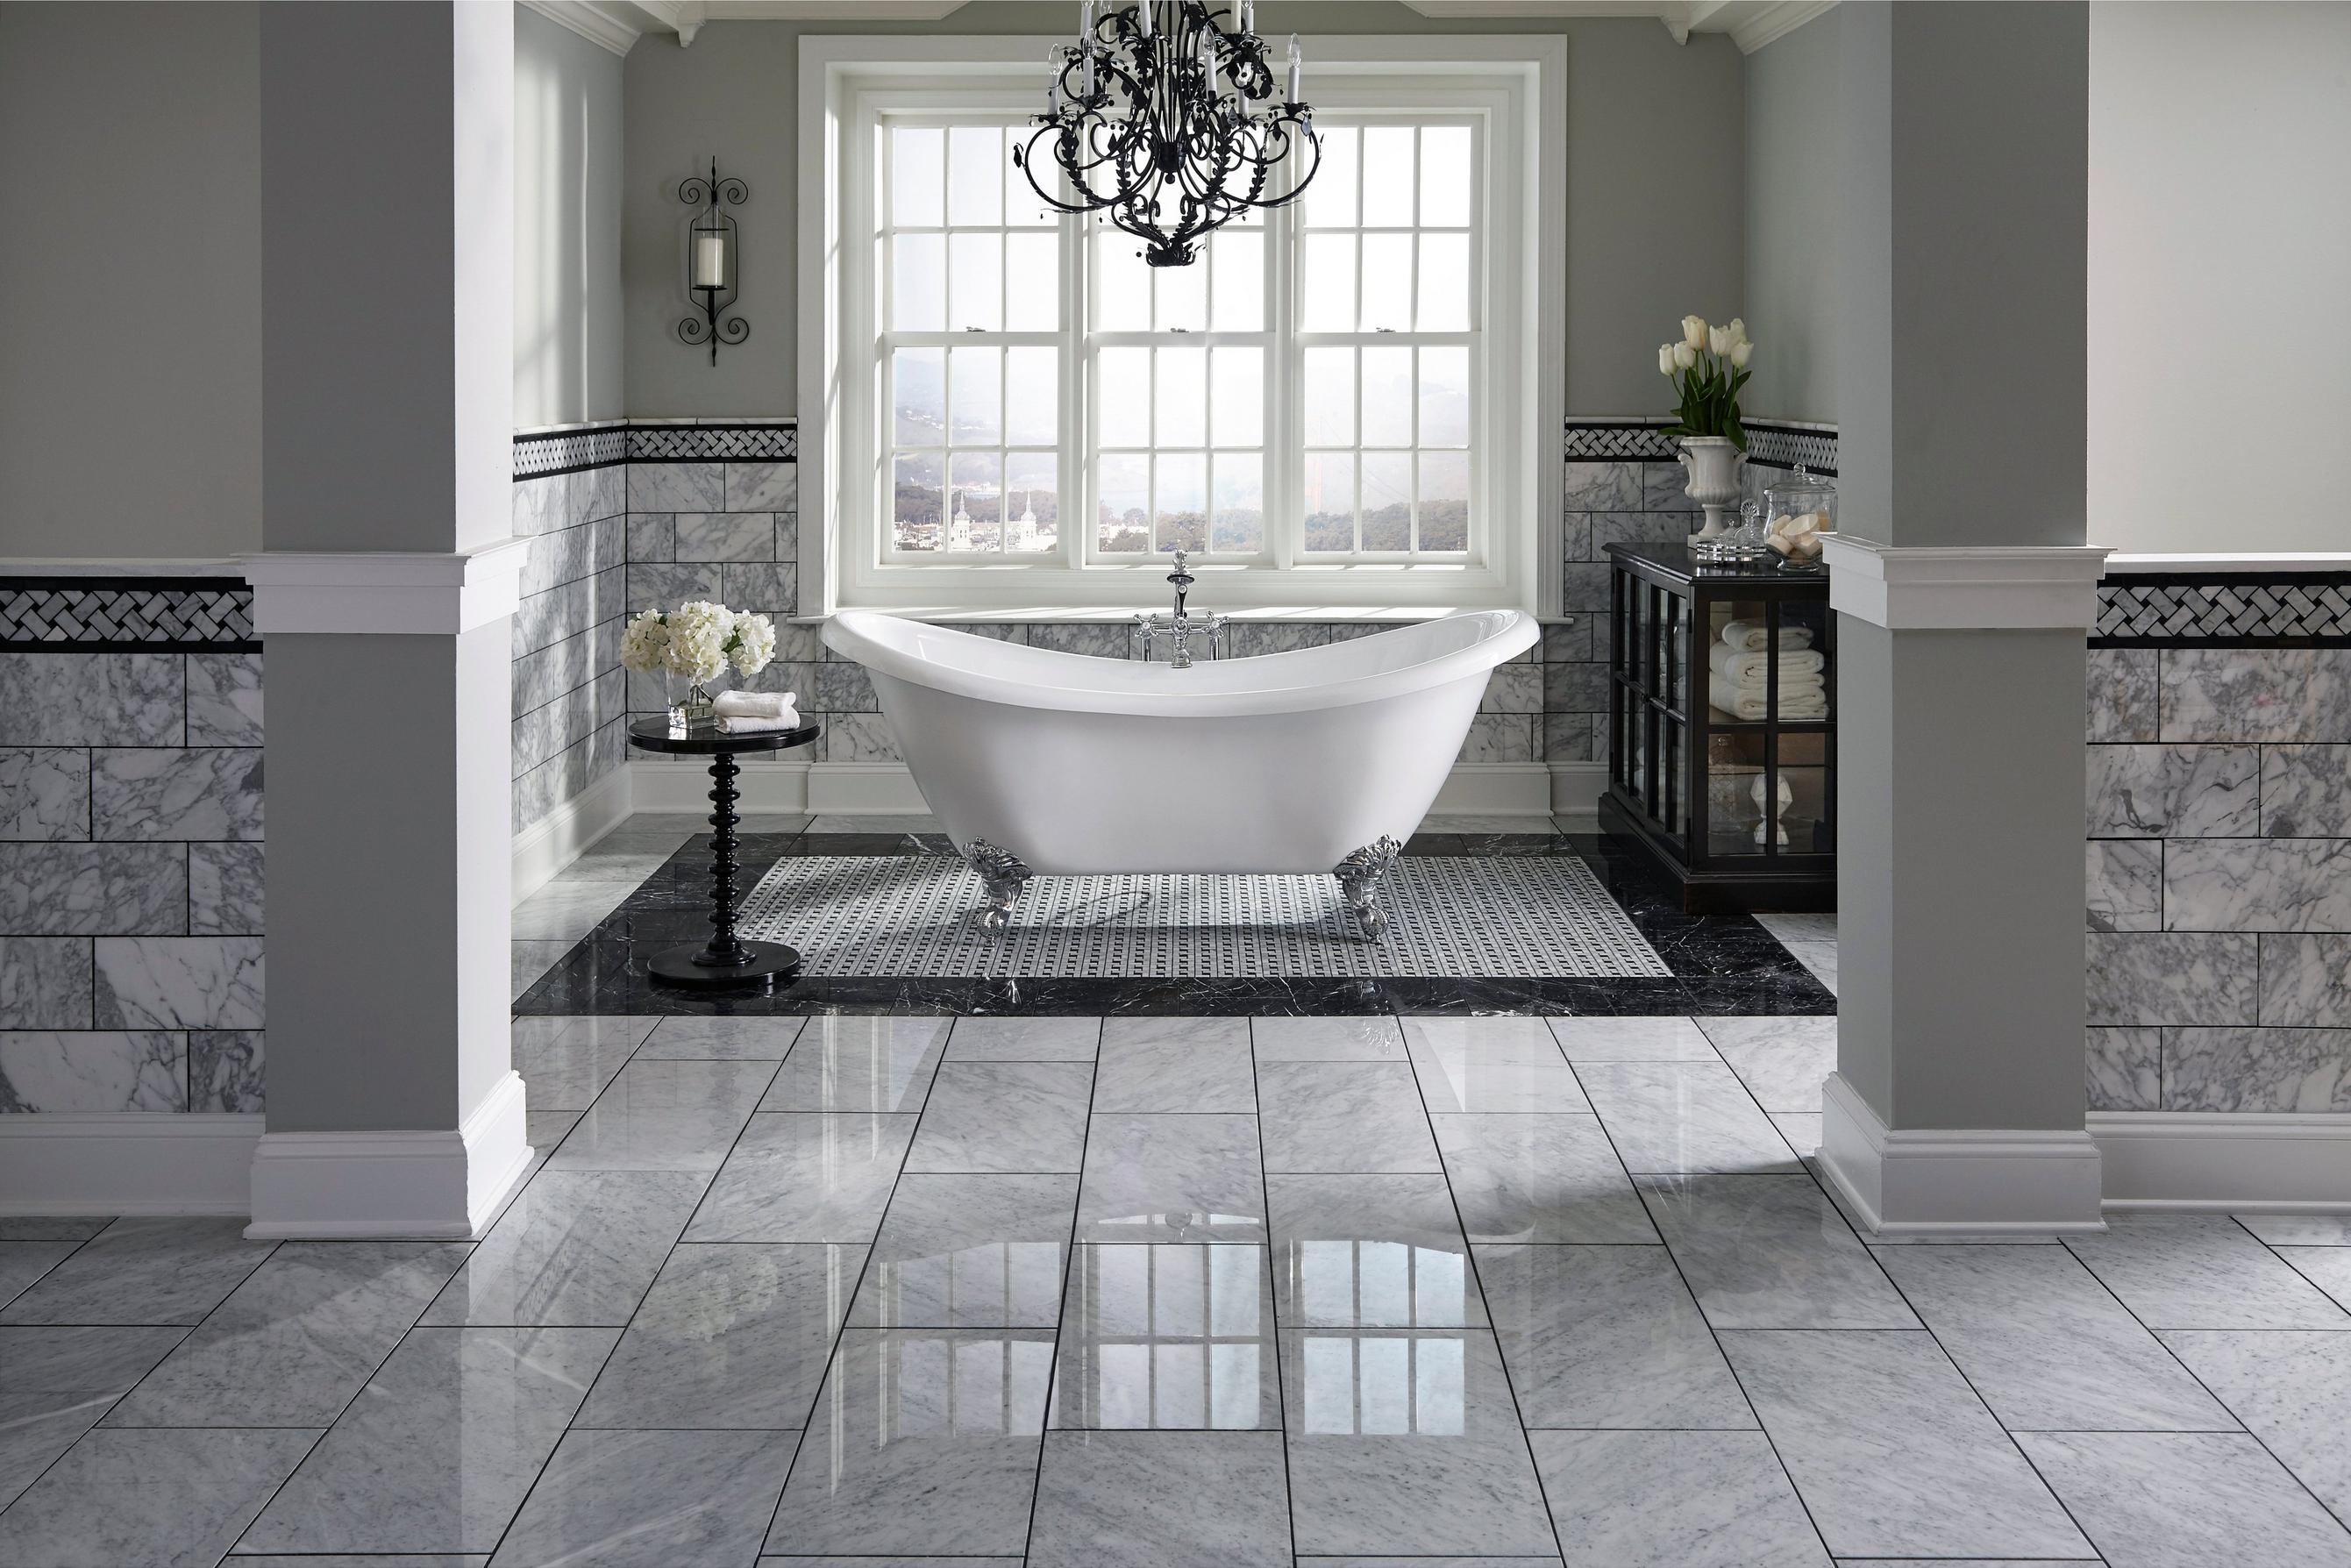 Rooms bathroom 16 nero marble tile bianco carrara polished pinwheel bath floor